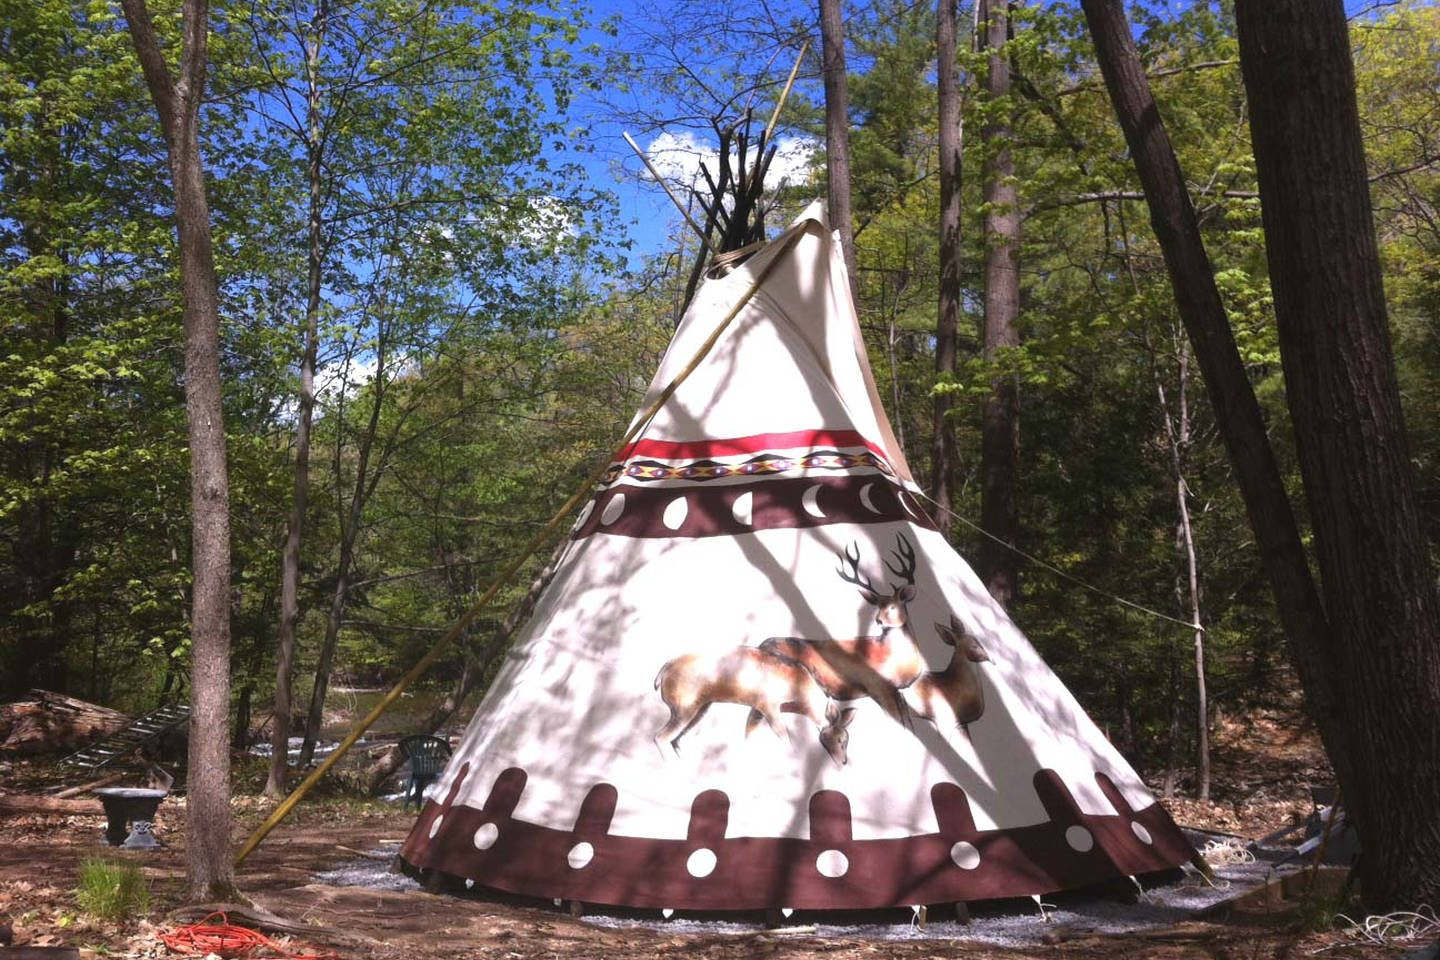 Pin by Gwen Swanson on : Best of Airbnb : | Tipi, Tent